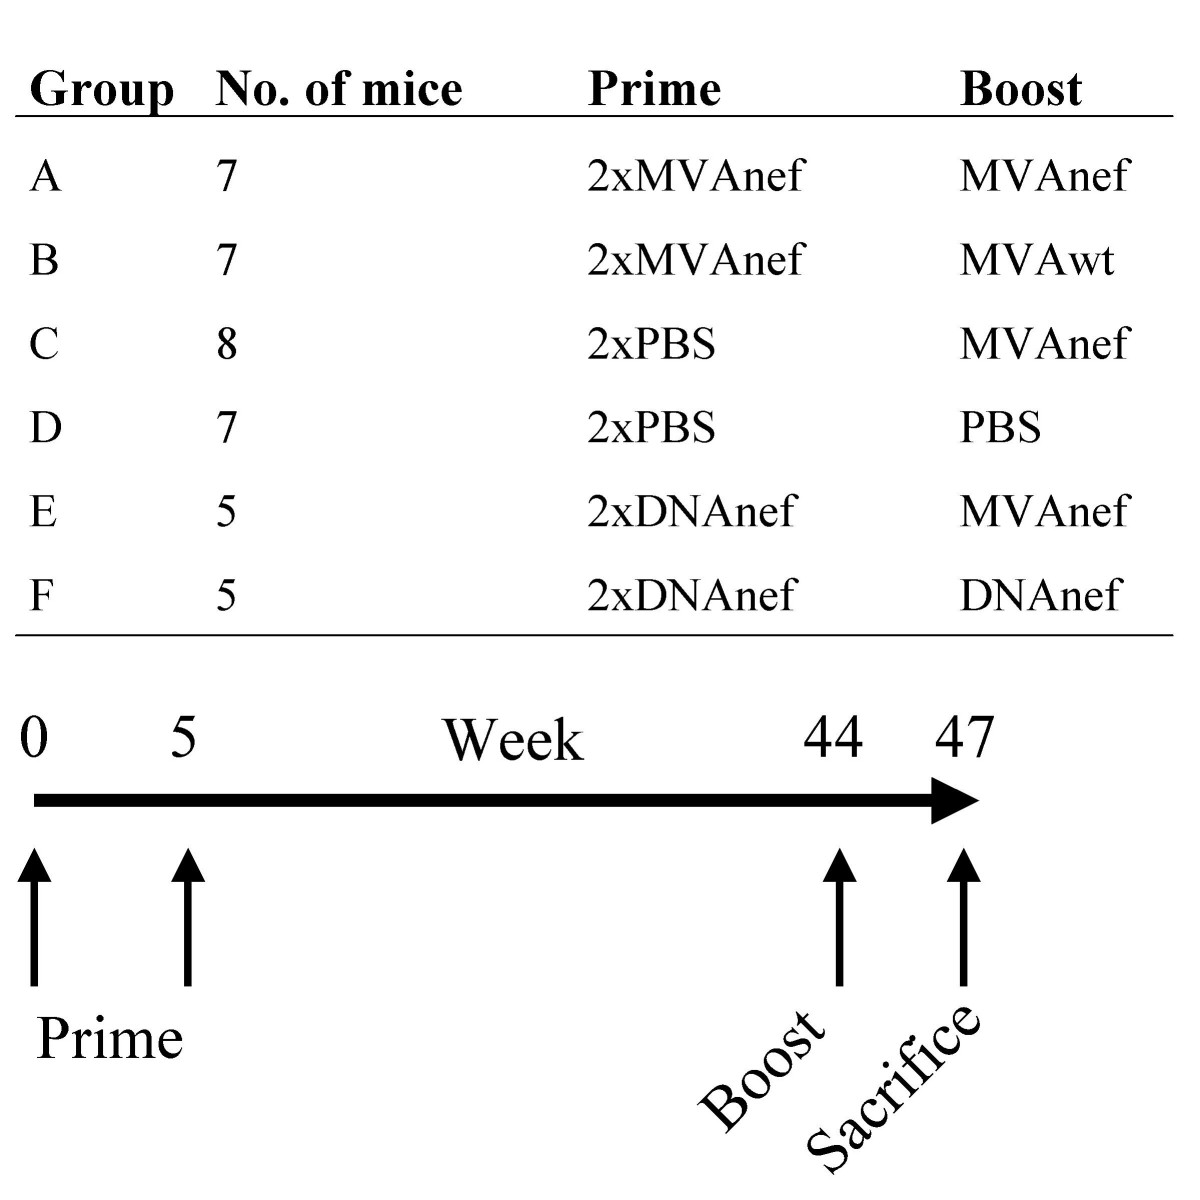 https://static-content.springer.com/image/art%3A10.1186%2F1750-9378-2-14/MediaObjects/13027_2007_Article_23_Fig1_HTML.jpg